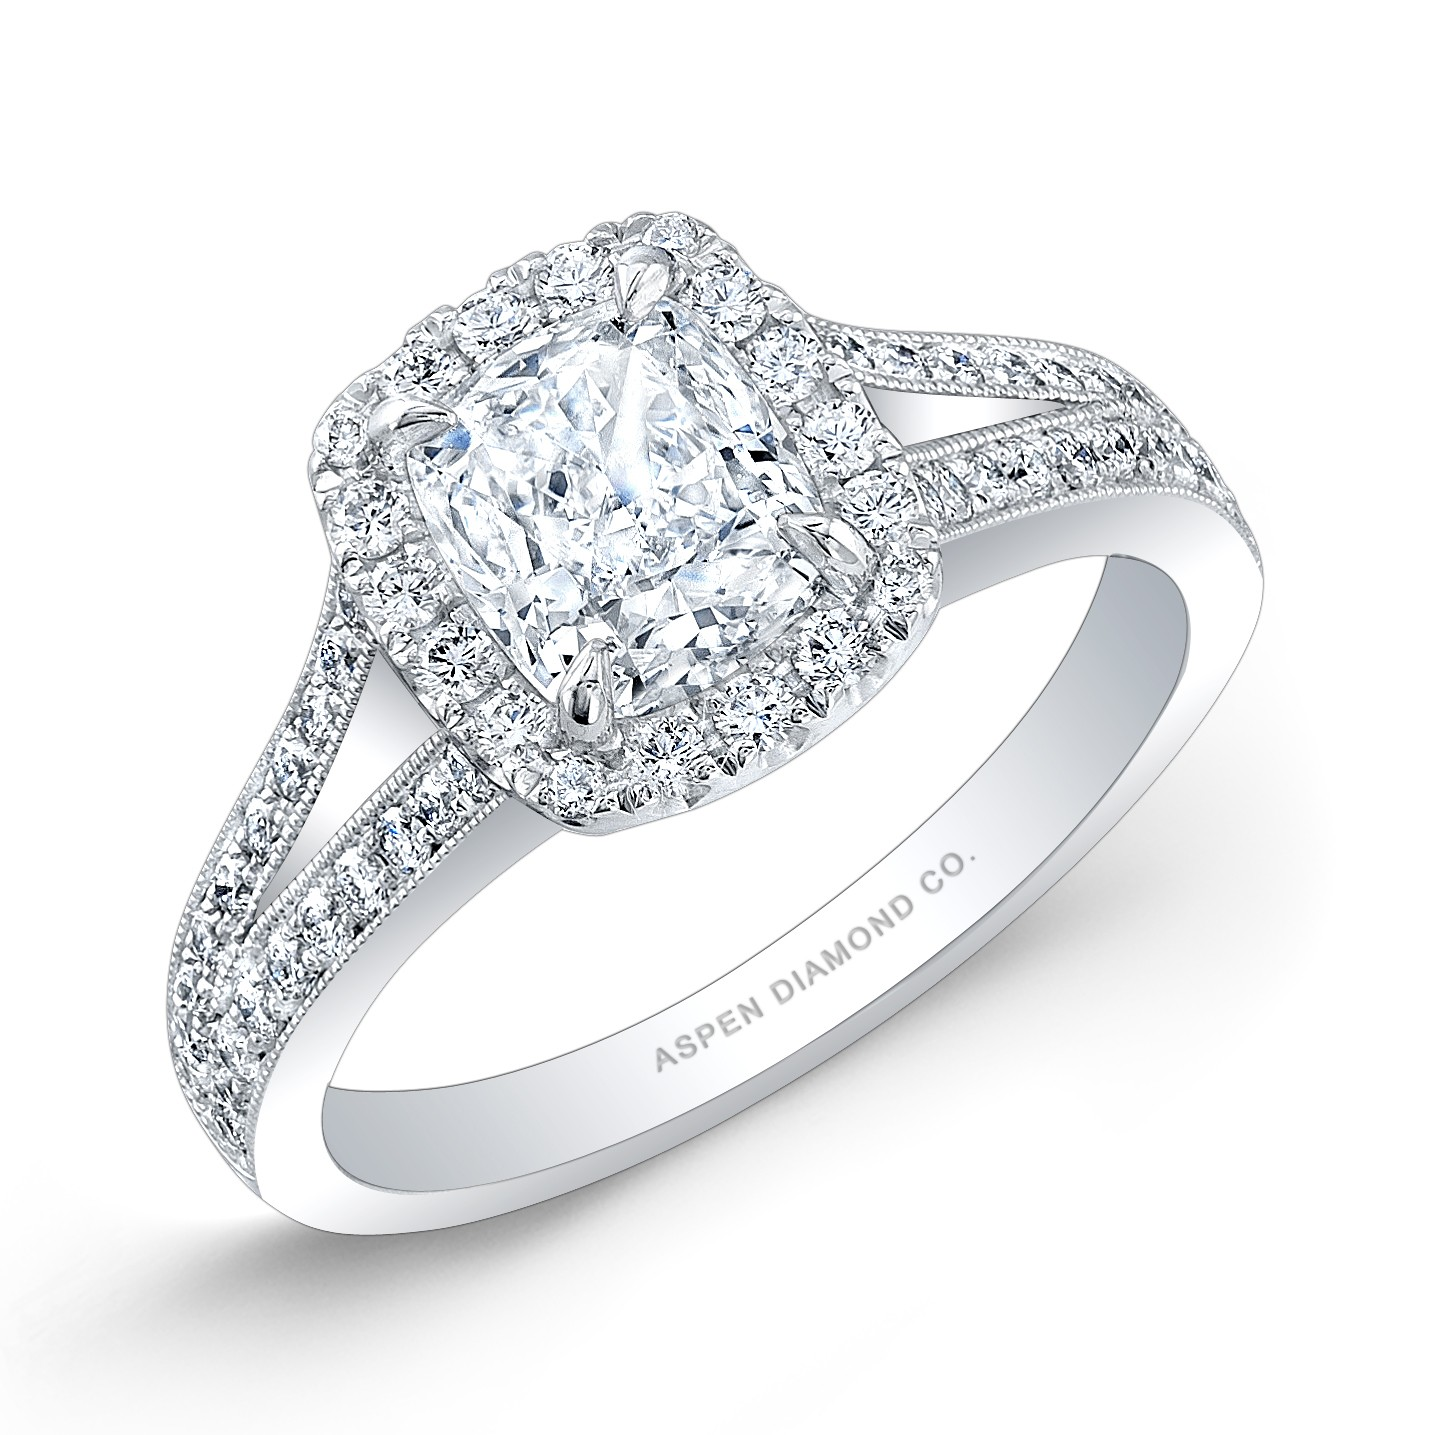 Cushion Cut Diamond Engagement Ring in 18K White Gold